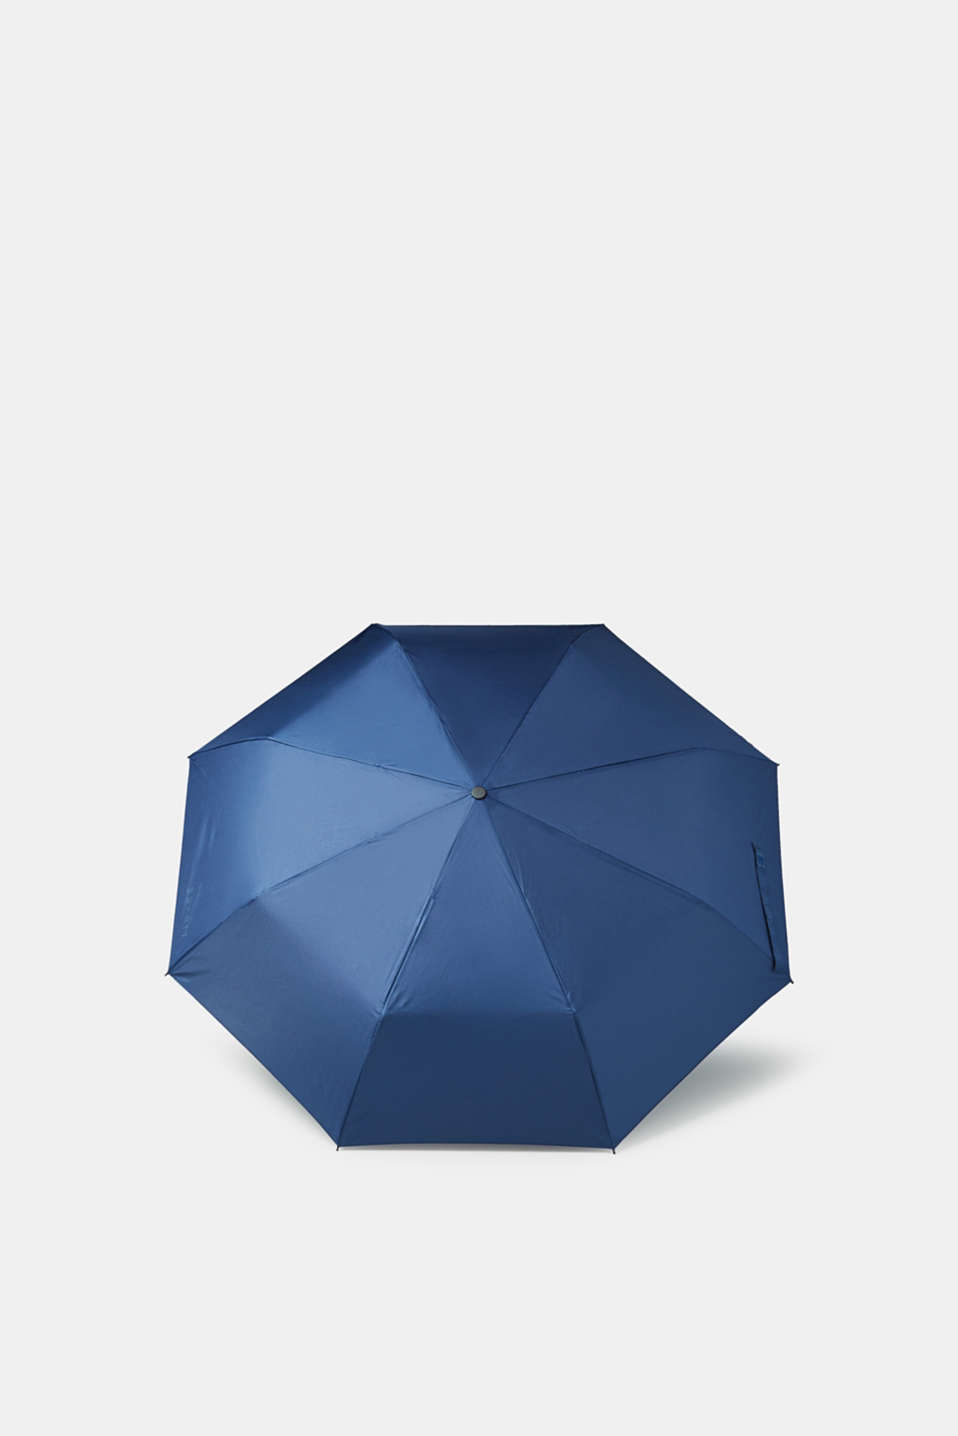 Esprit - Pocket-sized umbrella